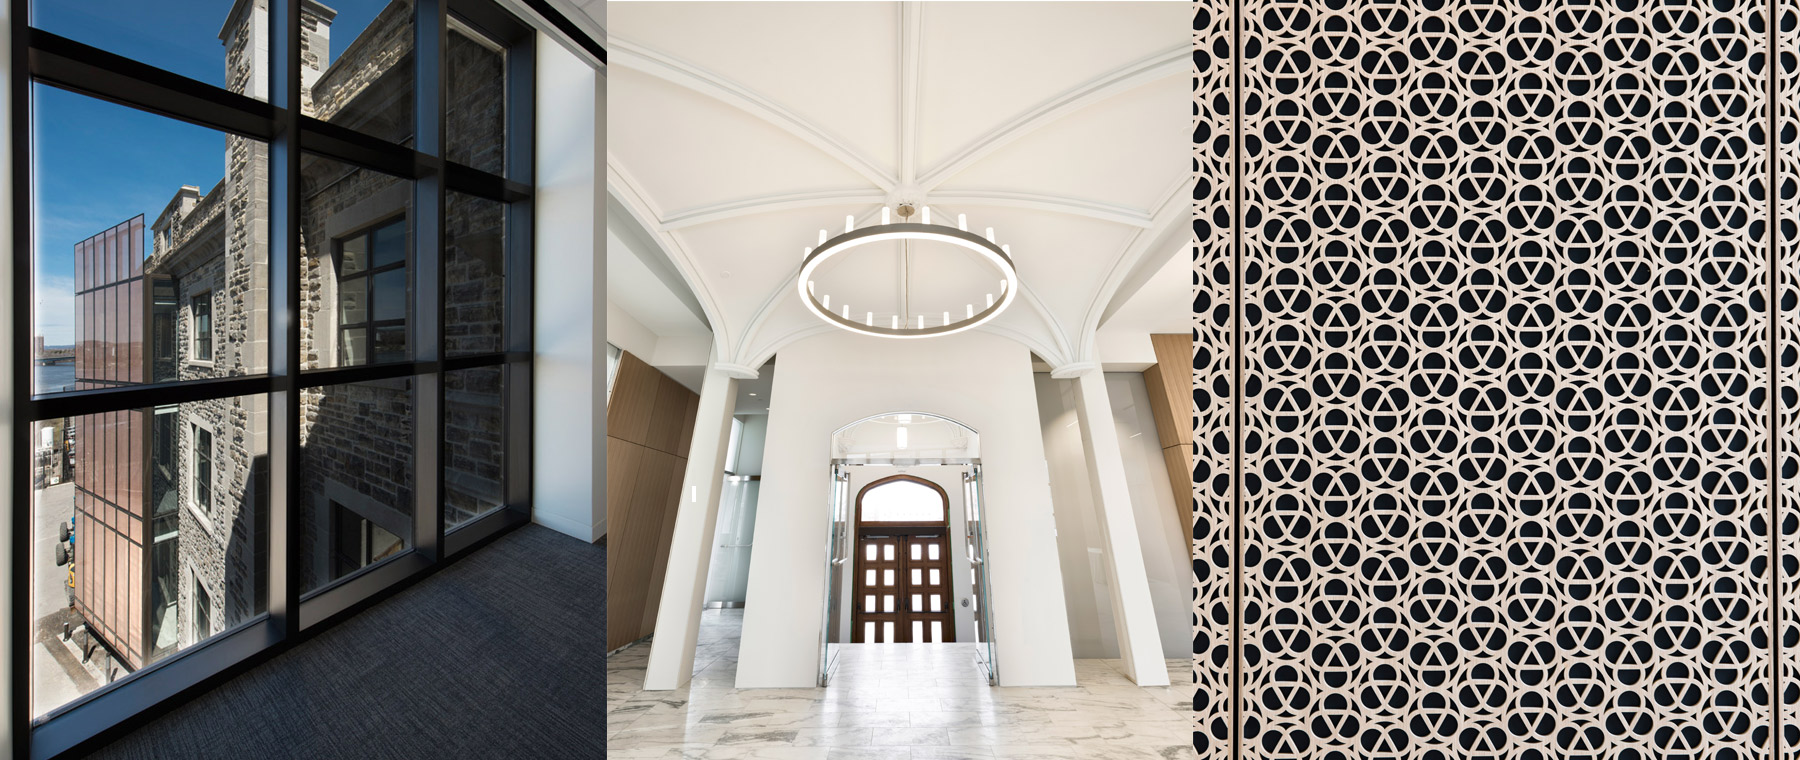 New Global Centre for Pluralism combines timeless design and heritage details